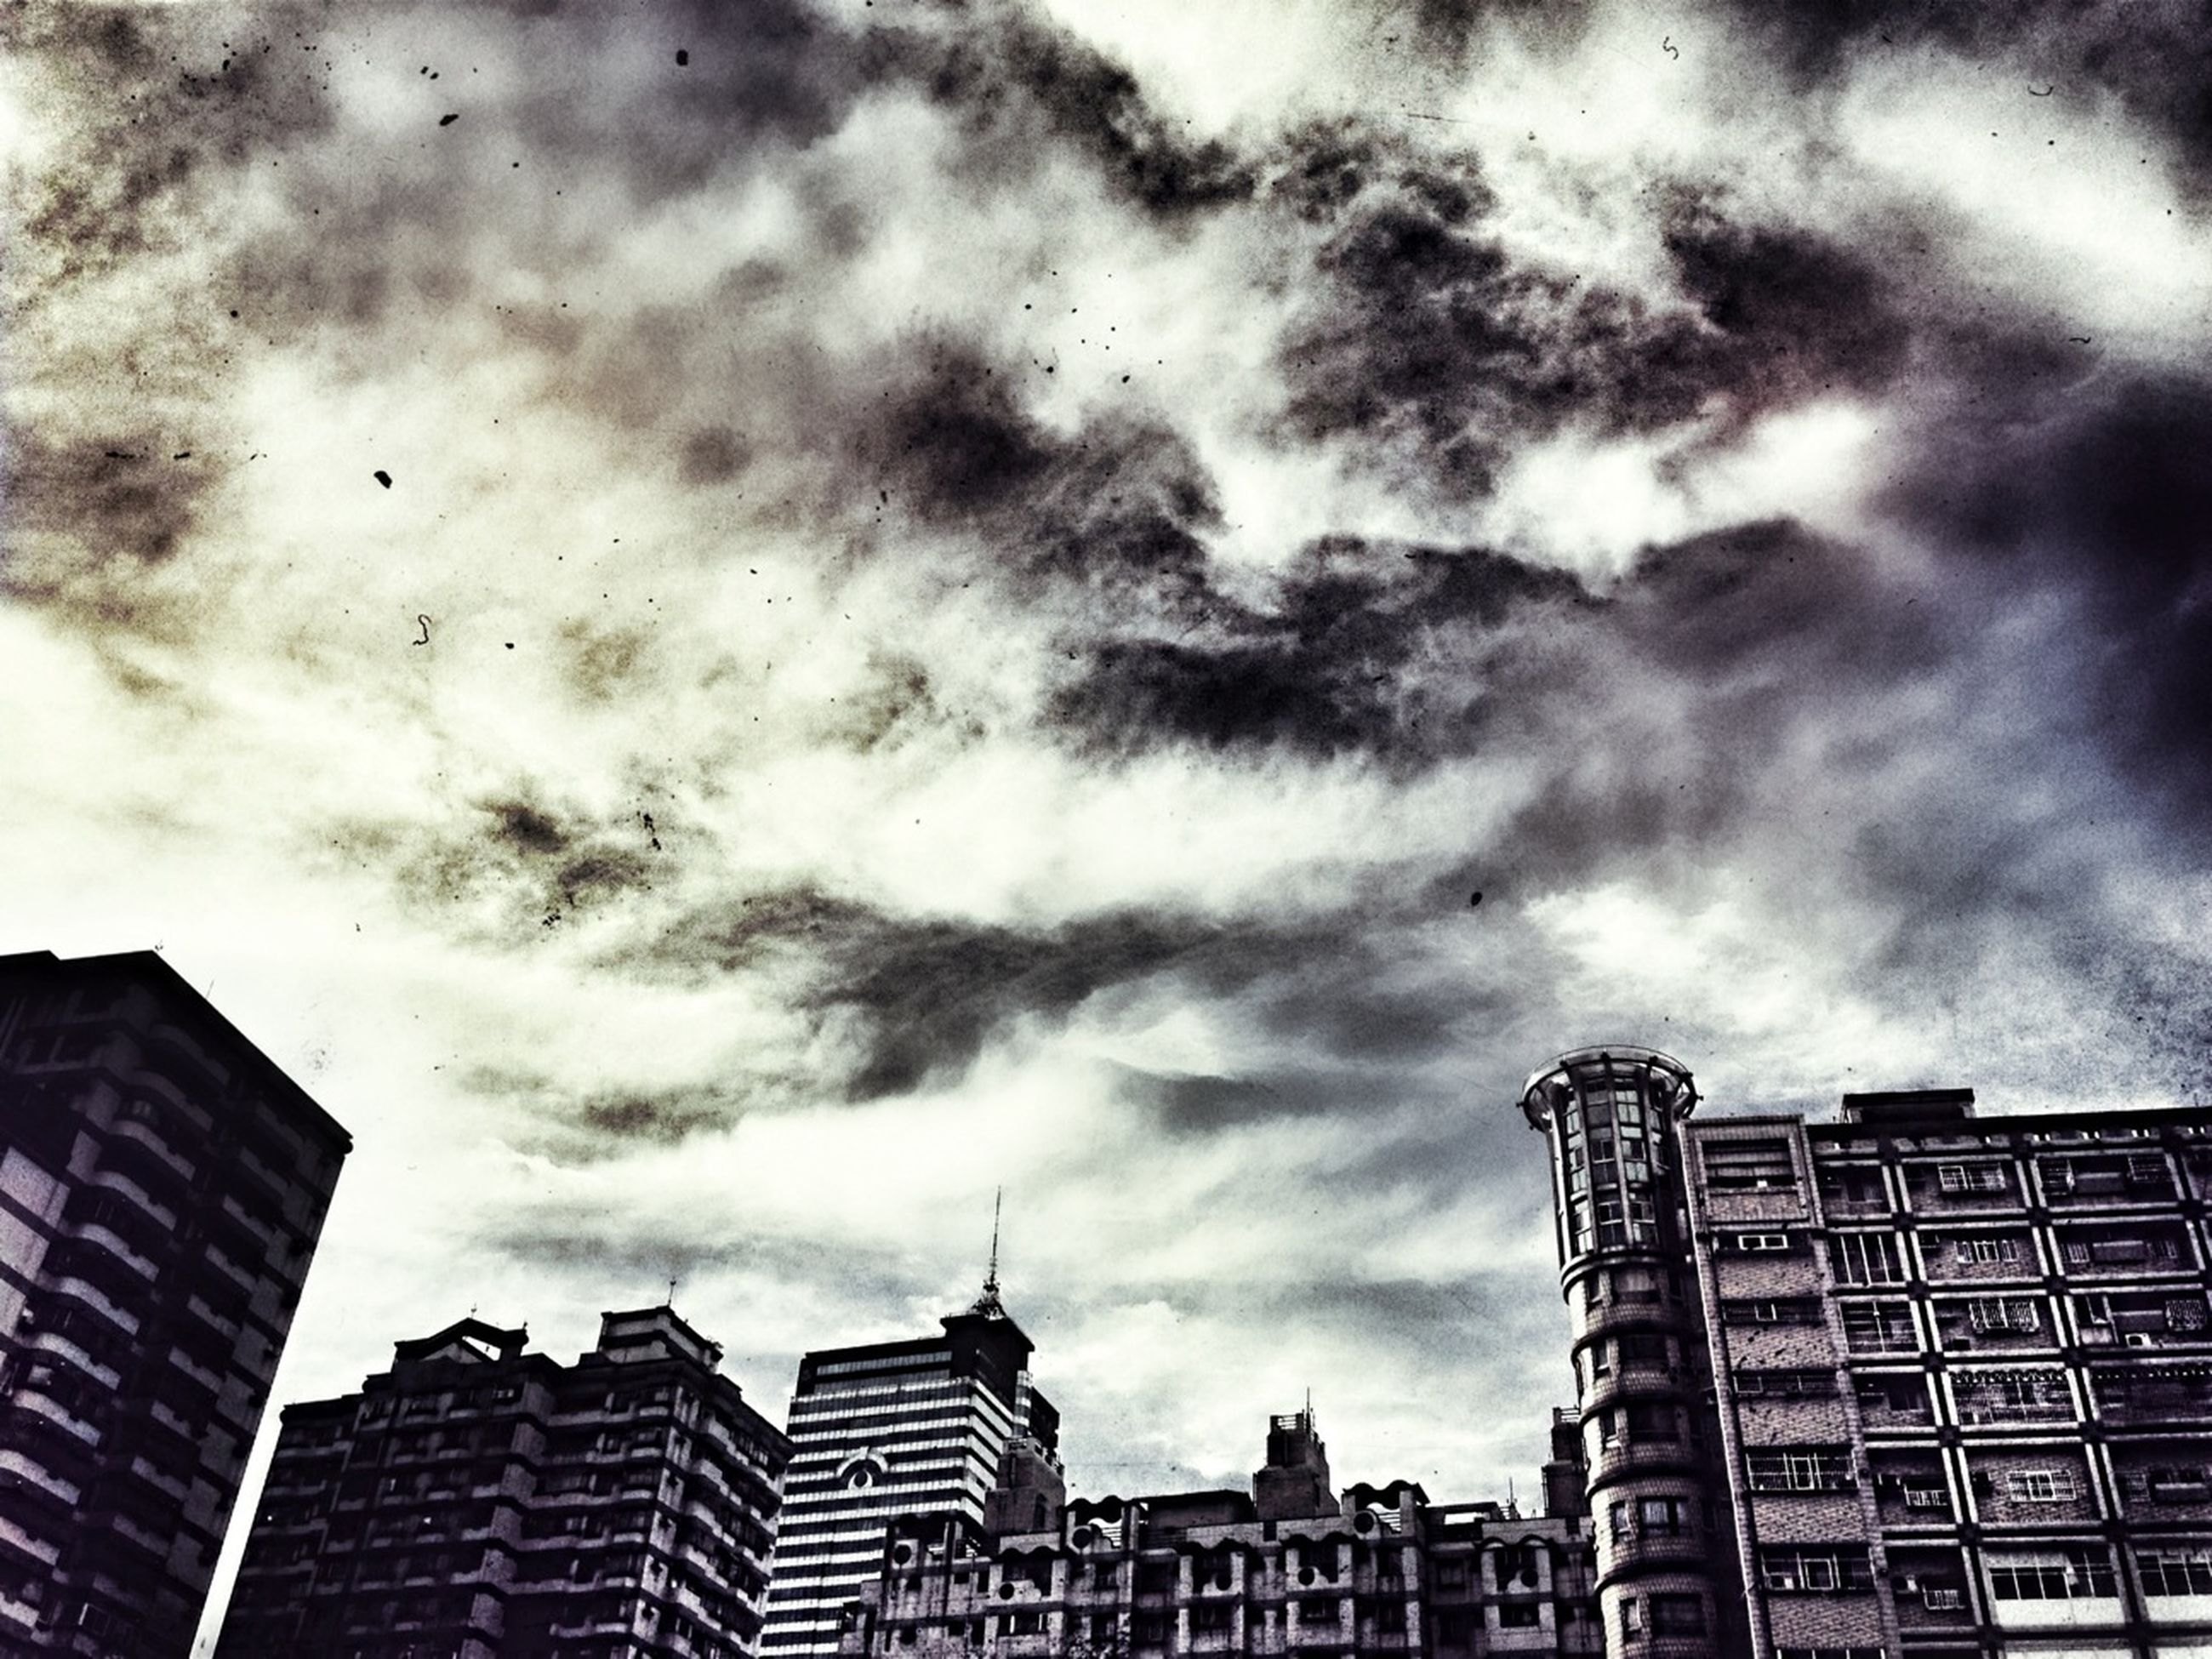 building exterior, architecture, built structure, sky, city, low angle view, cloud - sky, cloudy, building, skyscraper, residential building, cloud, overcast, residential structure, modern, office building, tall - high, weather, outdoors, city life